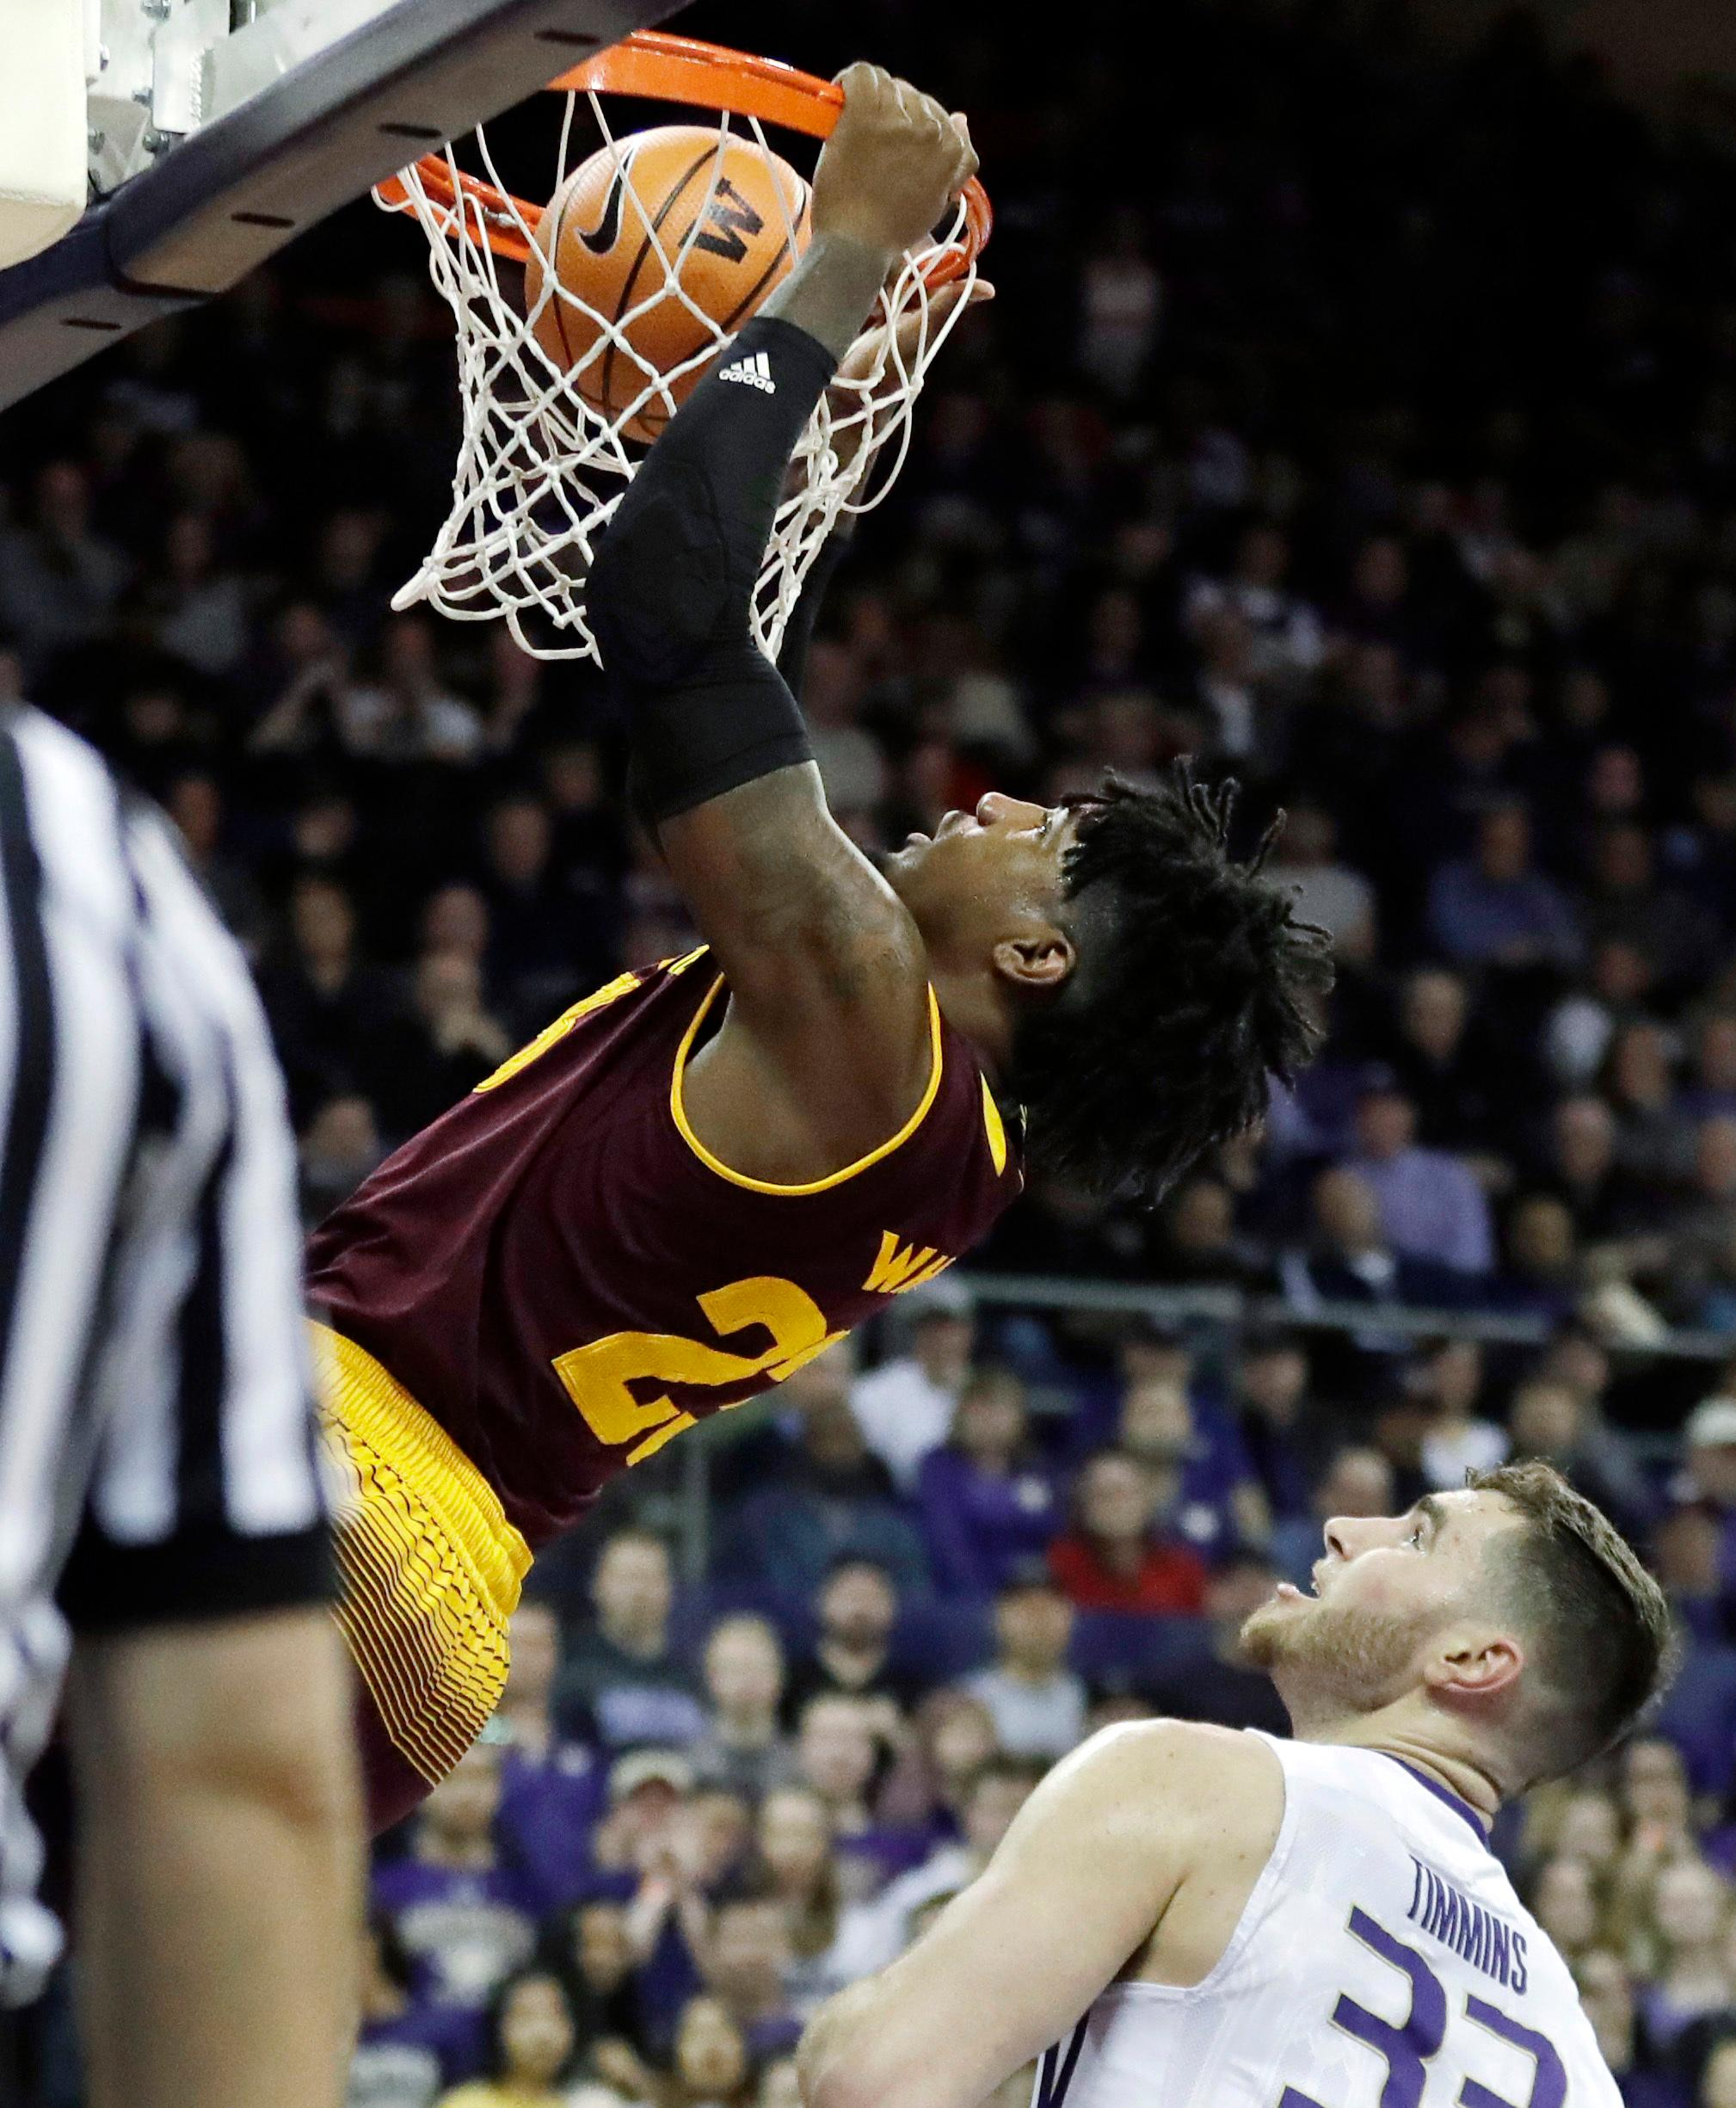 Arizona State Arizona State forward Romello White dunks above Washington forward Sam Timmins, lower right, in the first half of an NCAA college basketball game, Thursday, Feb. 1, 2018, in Seattle. (AP Photo/Ted S. Warren)